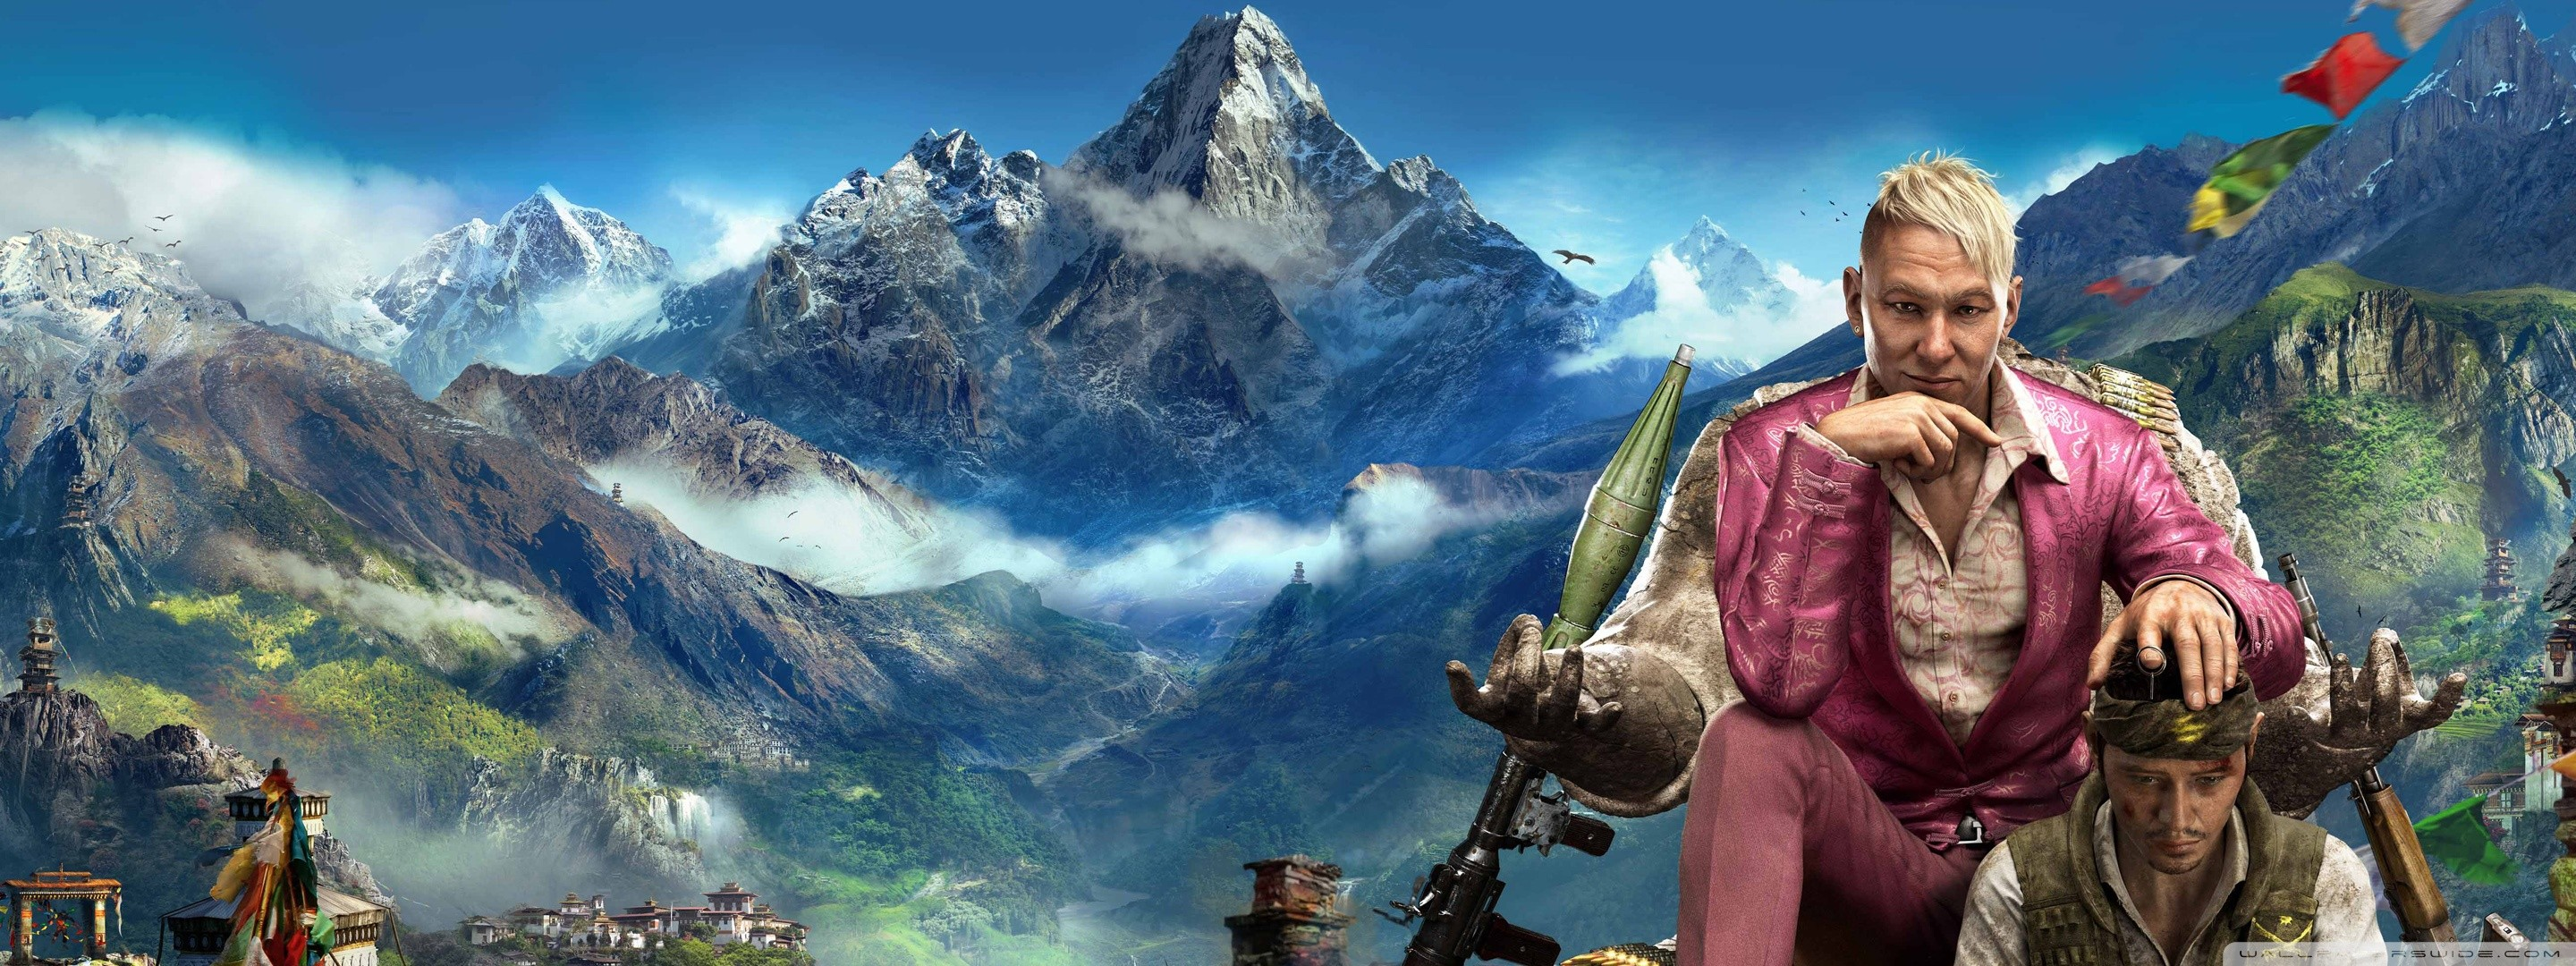 Far Cry 3 Hd Wallpaper Posted By Samantha Anderson